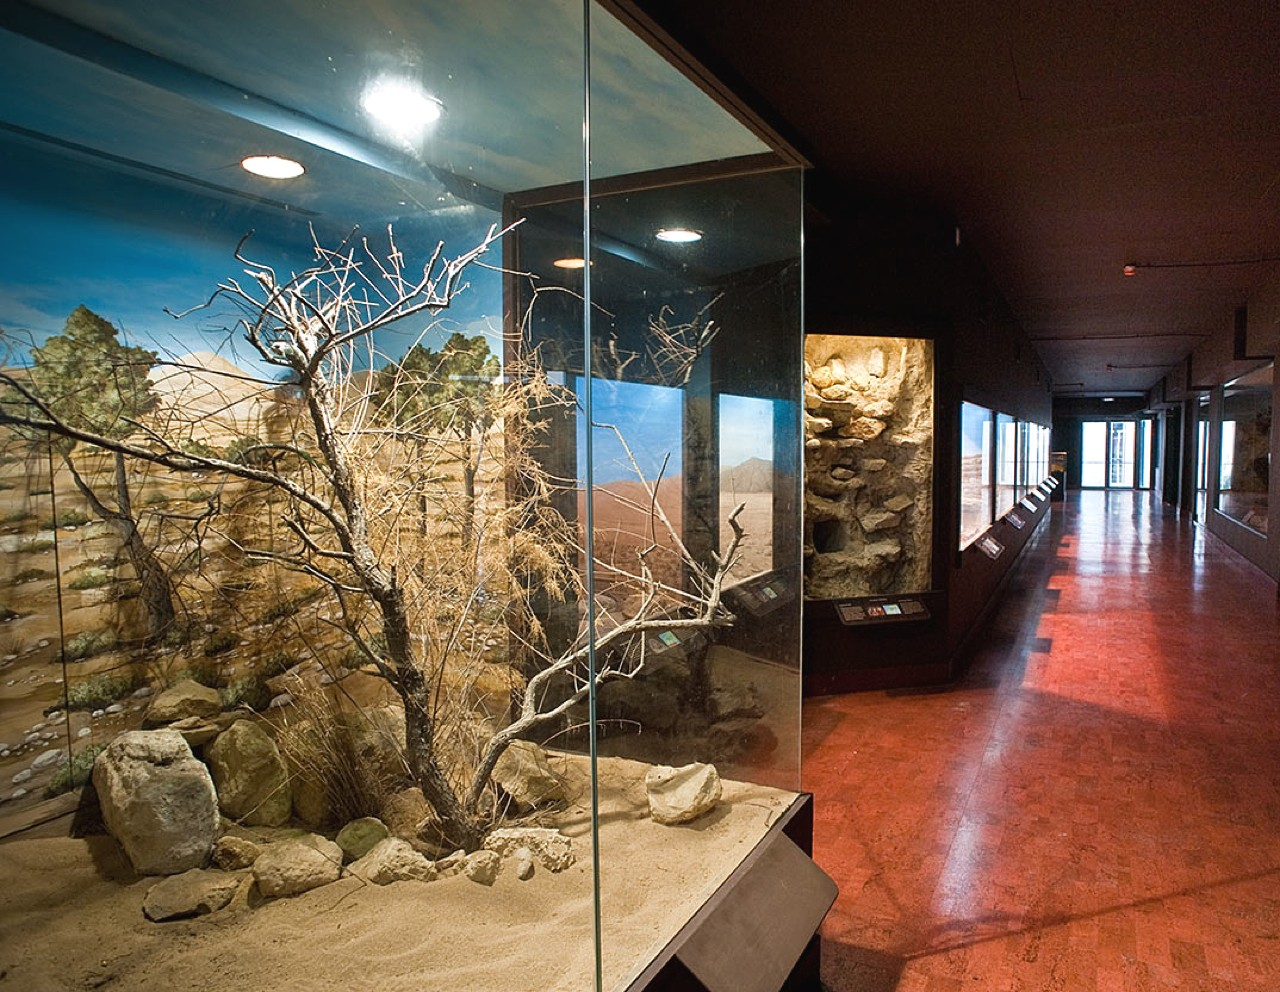 Natural History Museum Heraklion, Explore The Natural Environment Of Crete, things to do heraklion crete, activities heraklion crete, what to do family heraklion, families activities heraklion crete